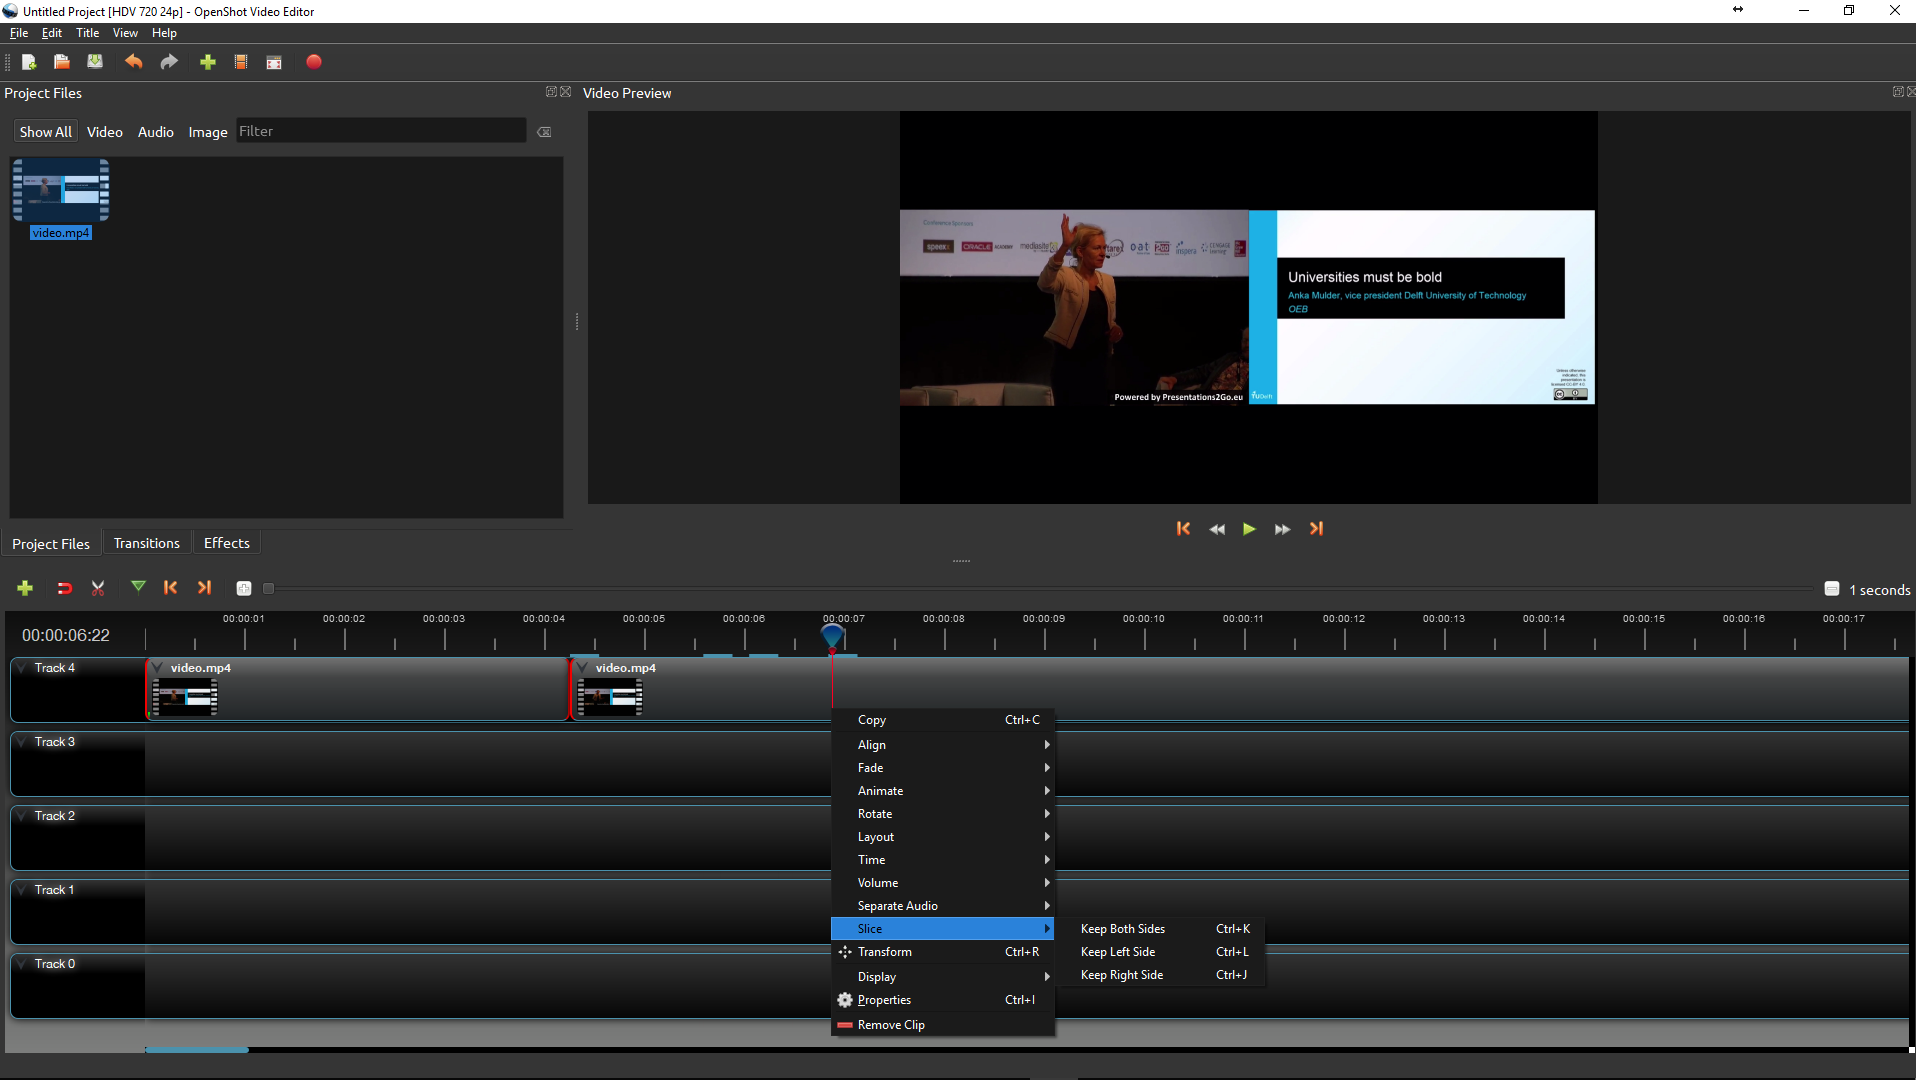 Trim with OpenShot Video Editor